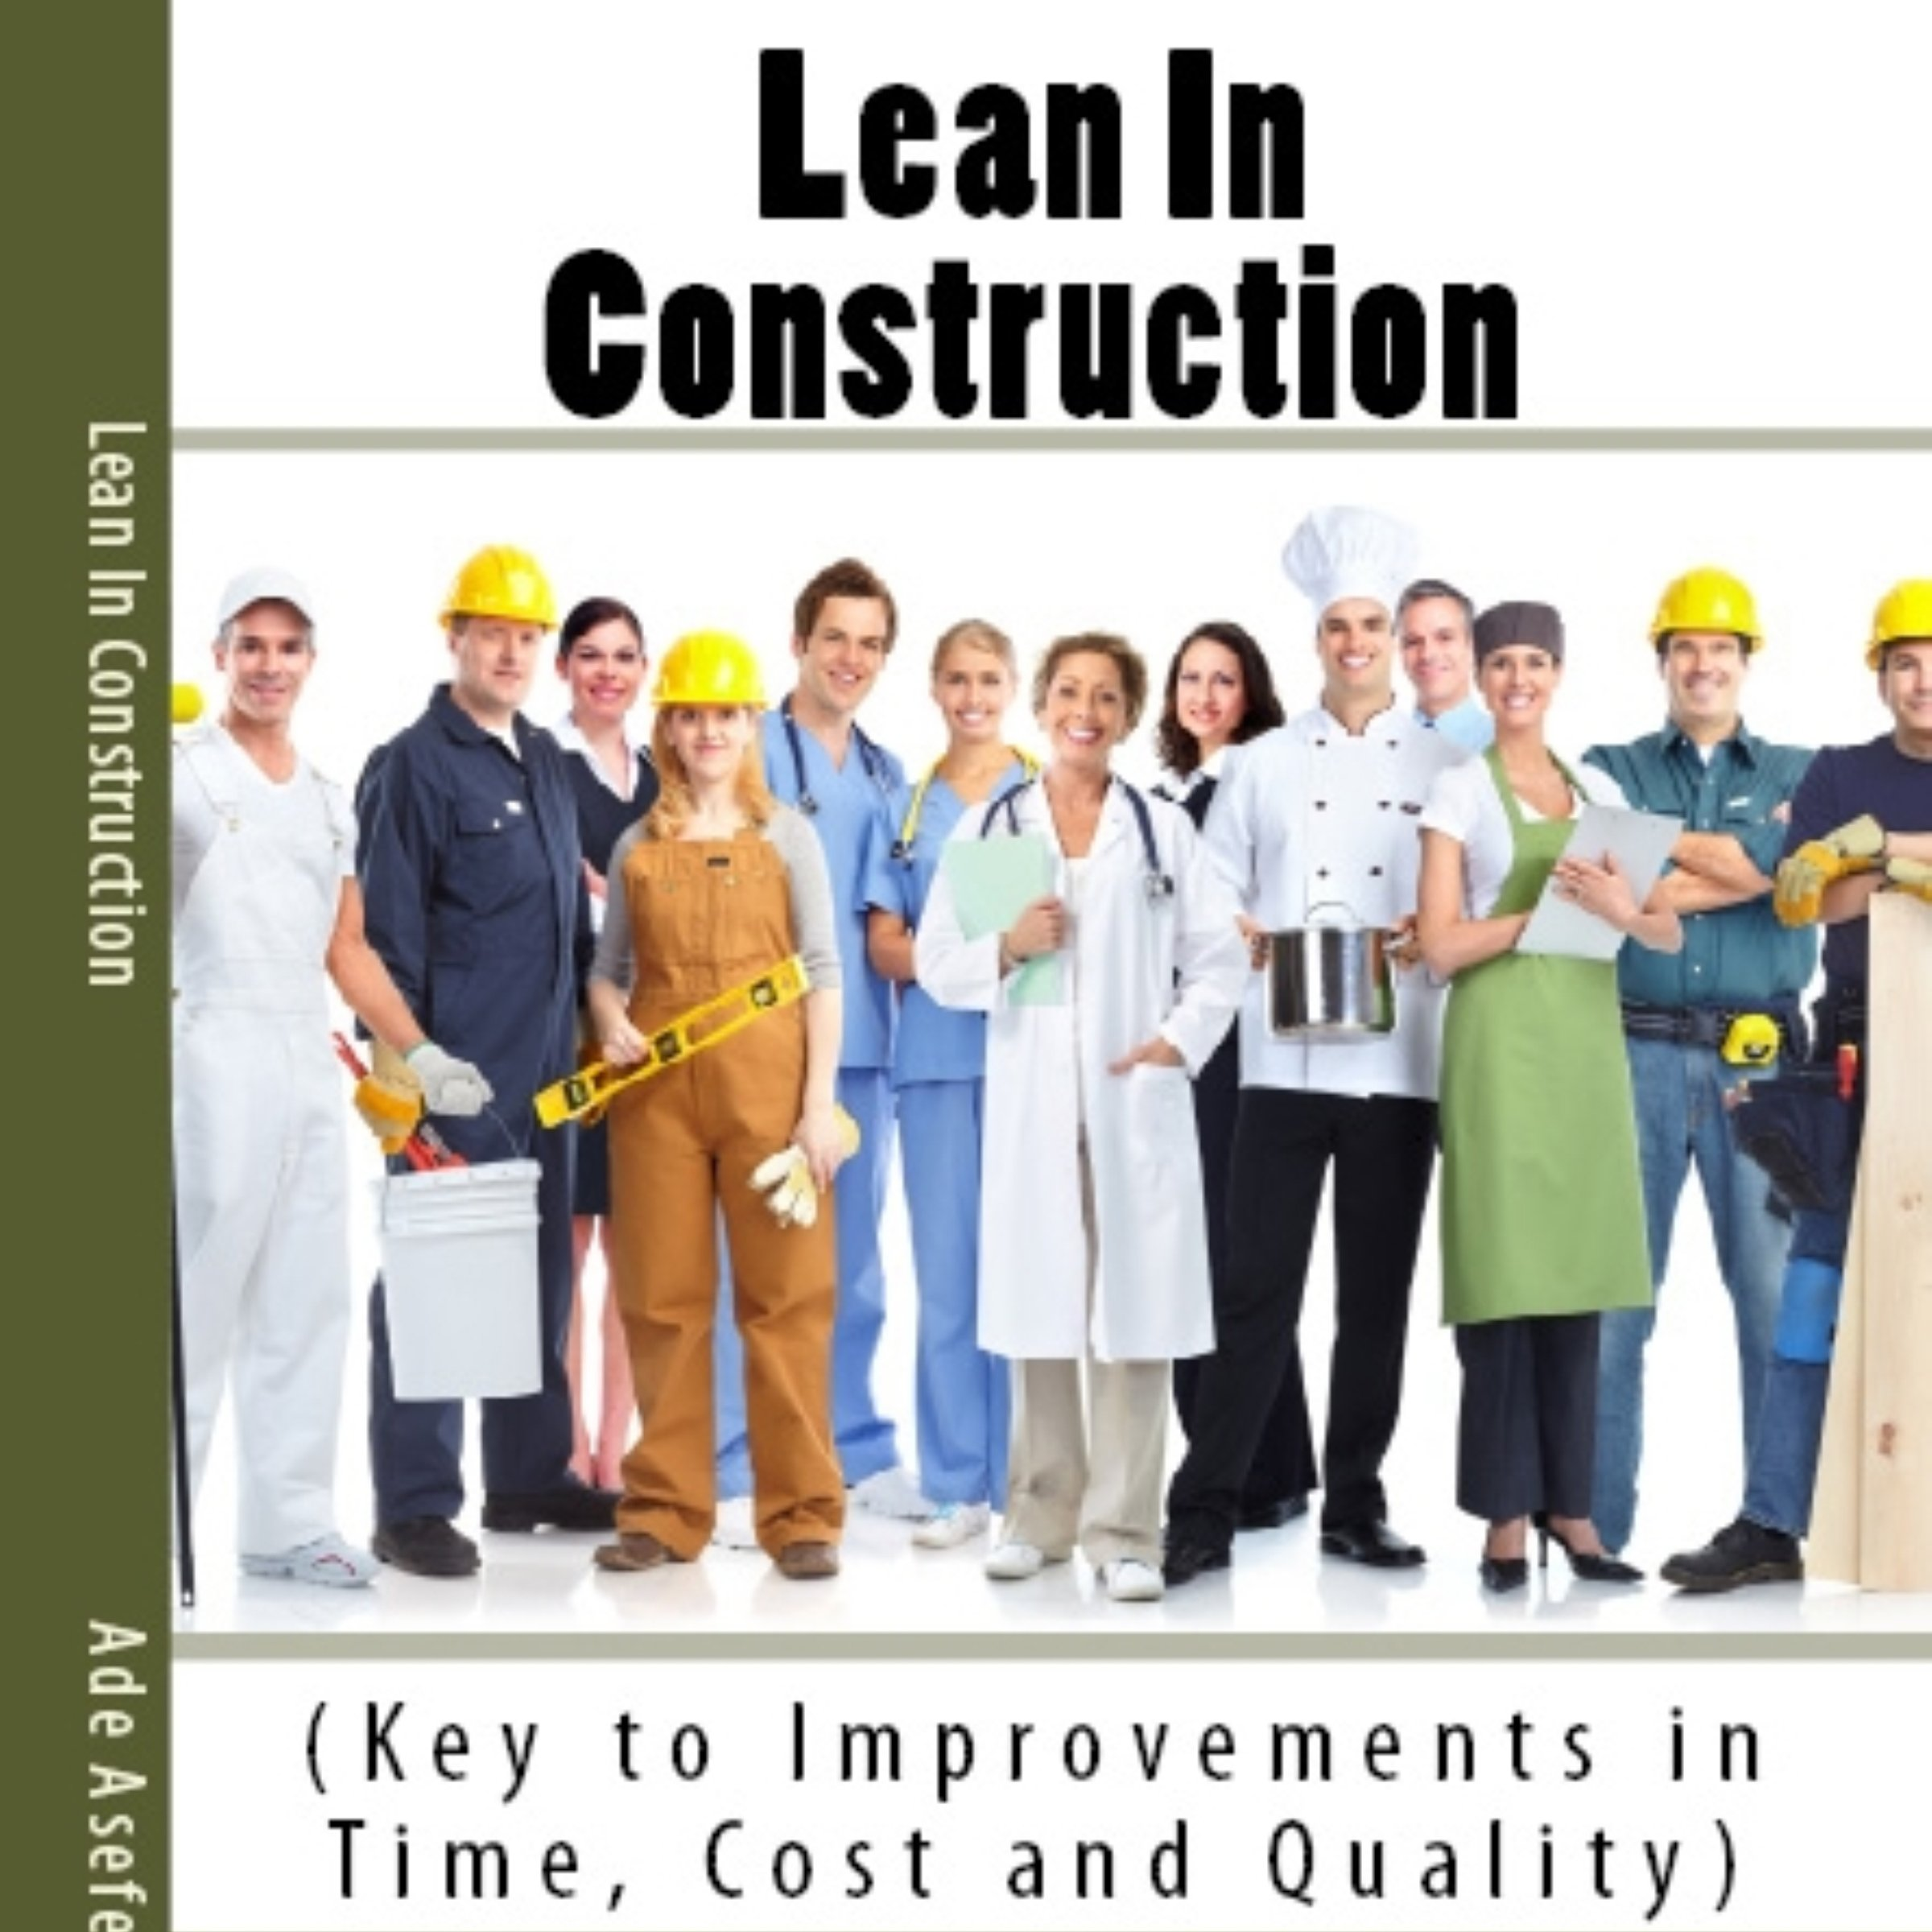 Lean in Construction: Key to Improvements in Time, Cost and Quality